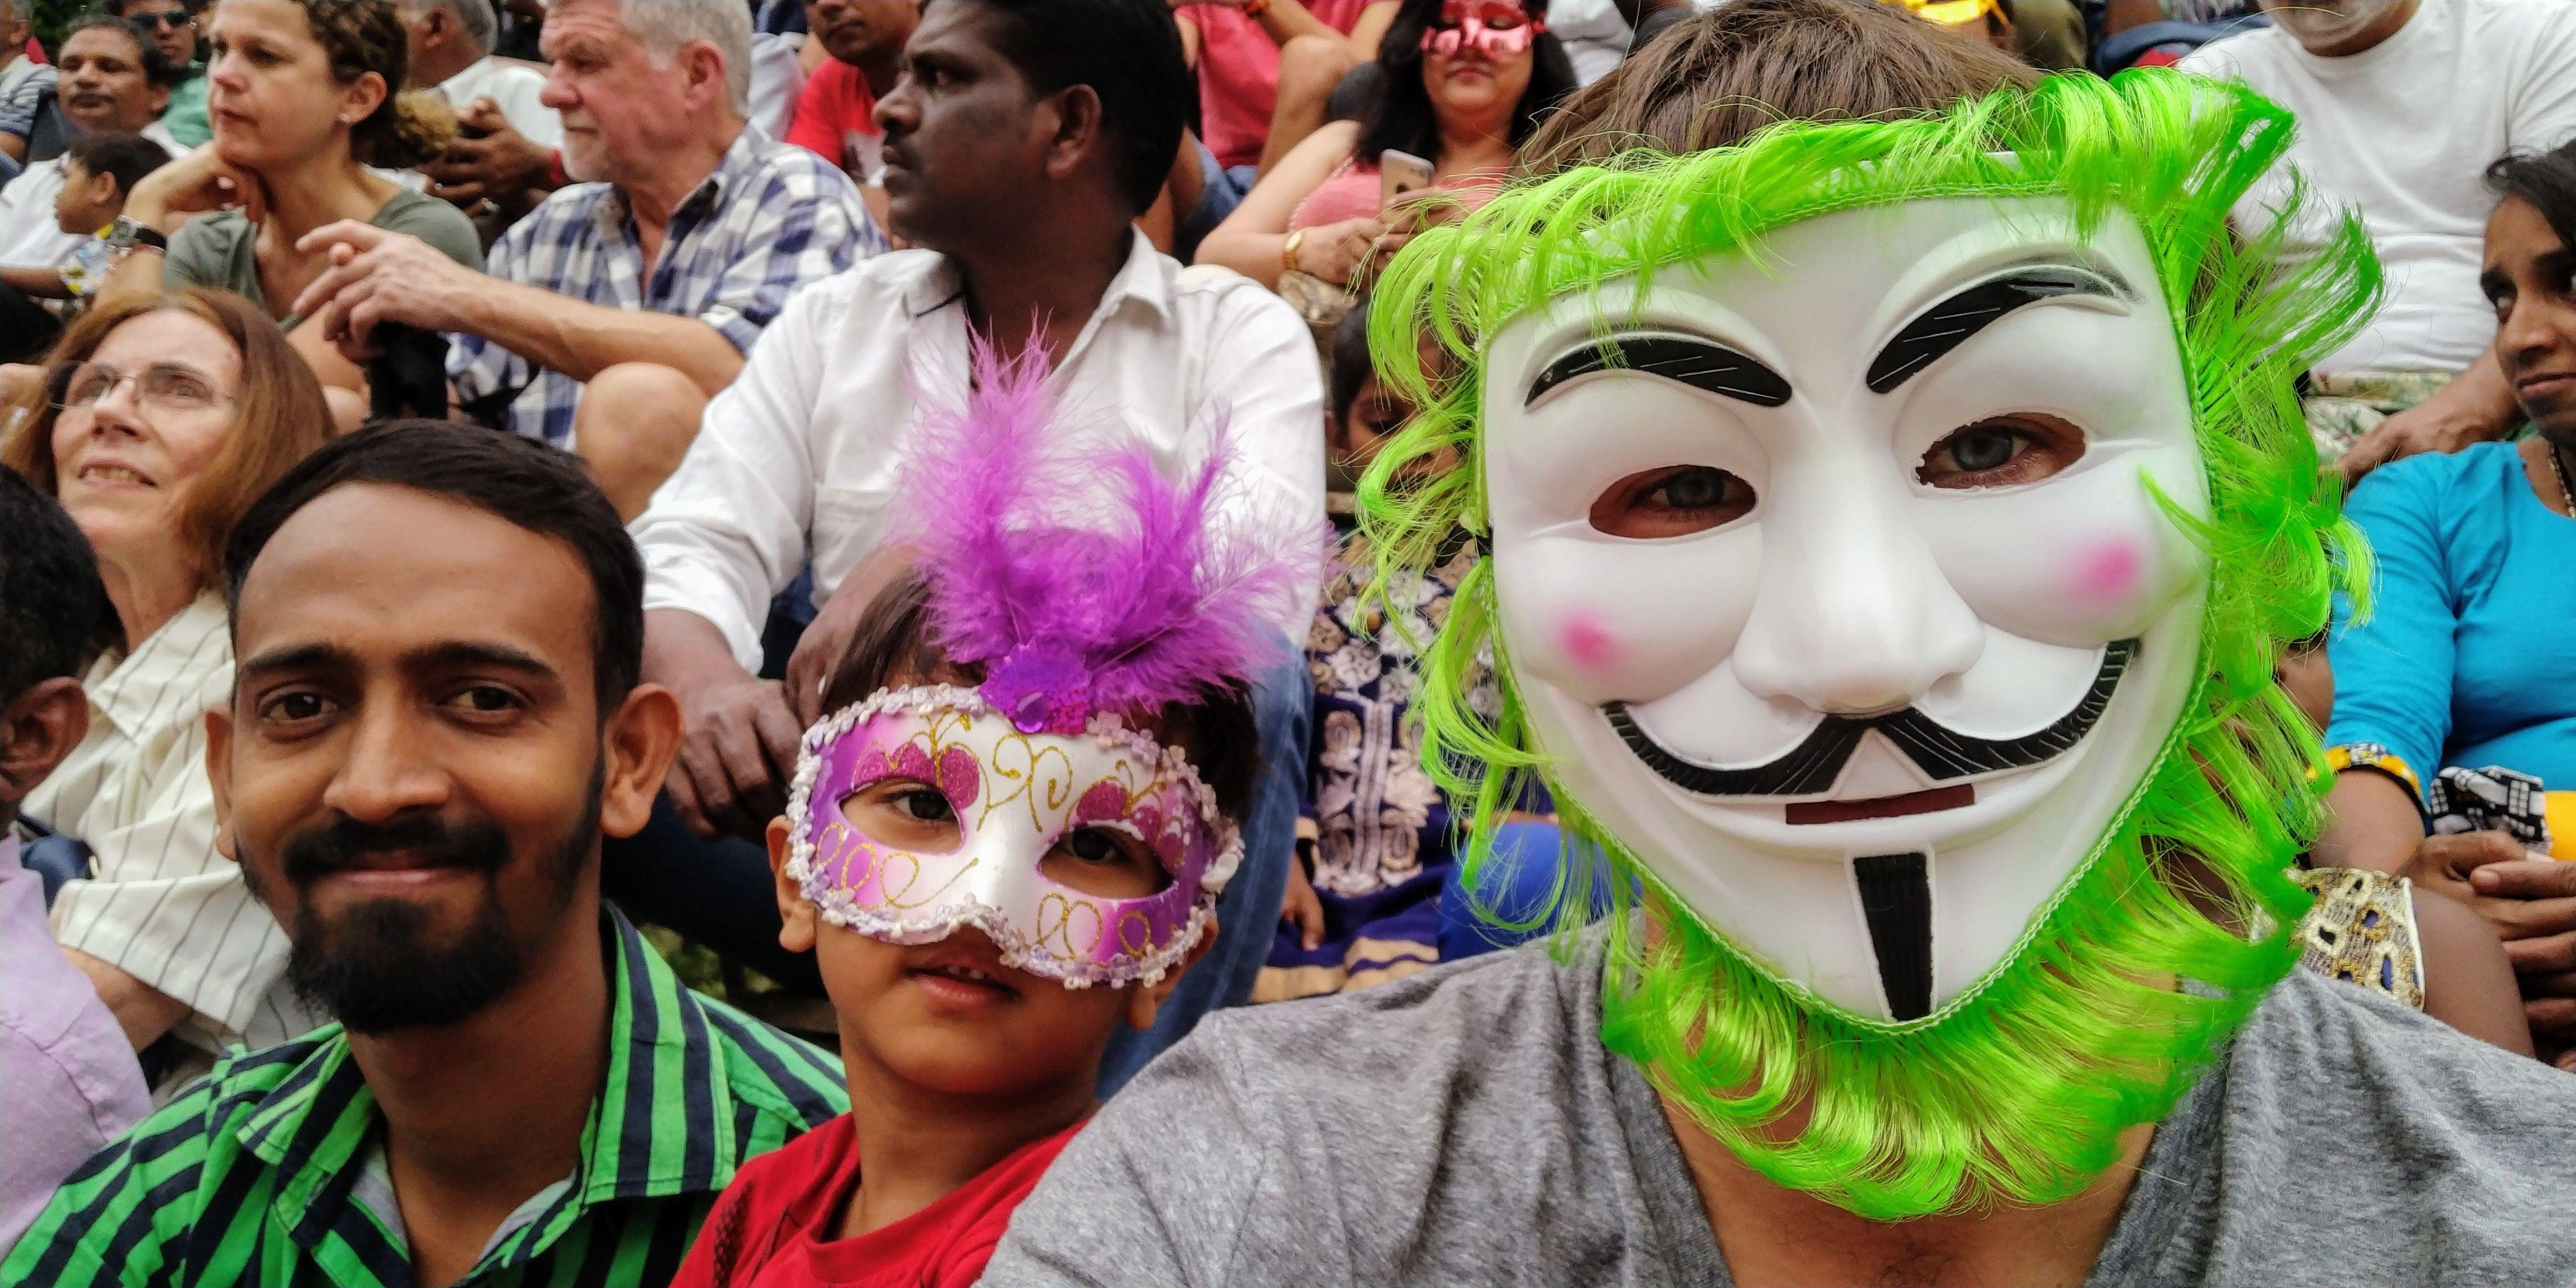 Celebrating the Goa Carnival in Panji India wearing a Guy Fawkes mask